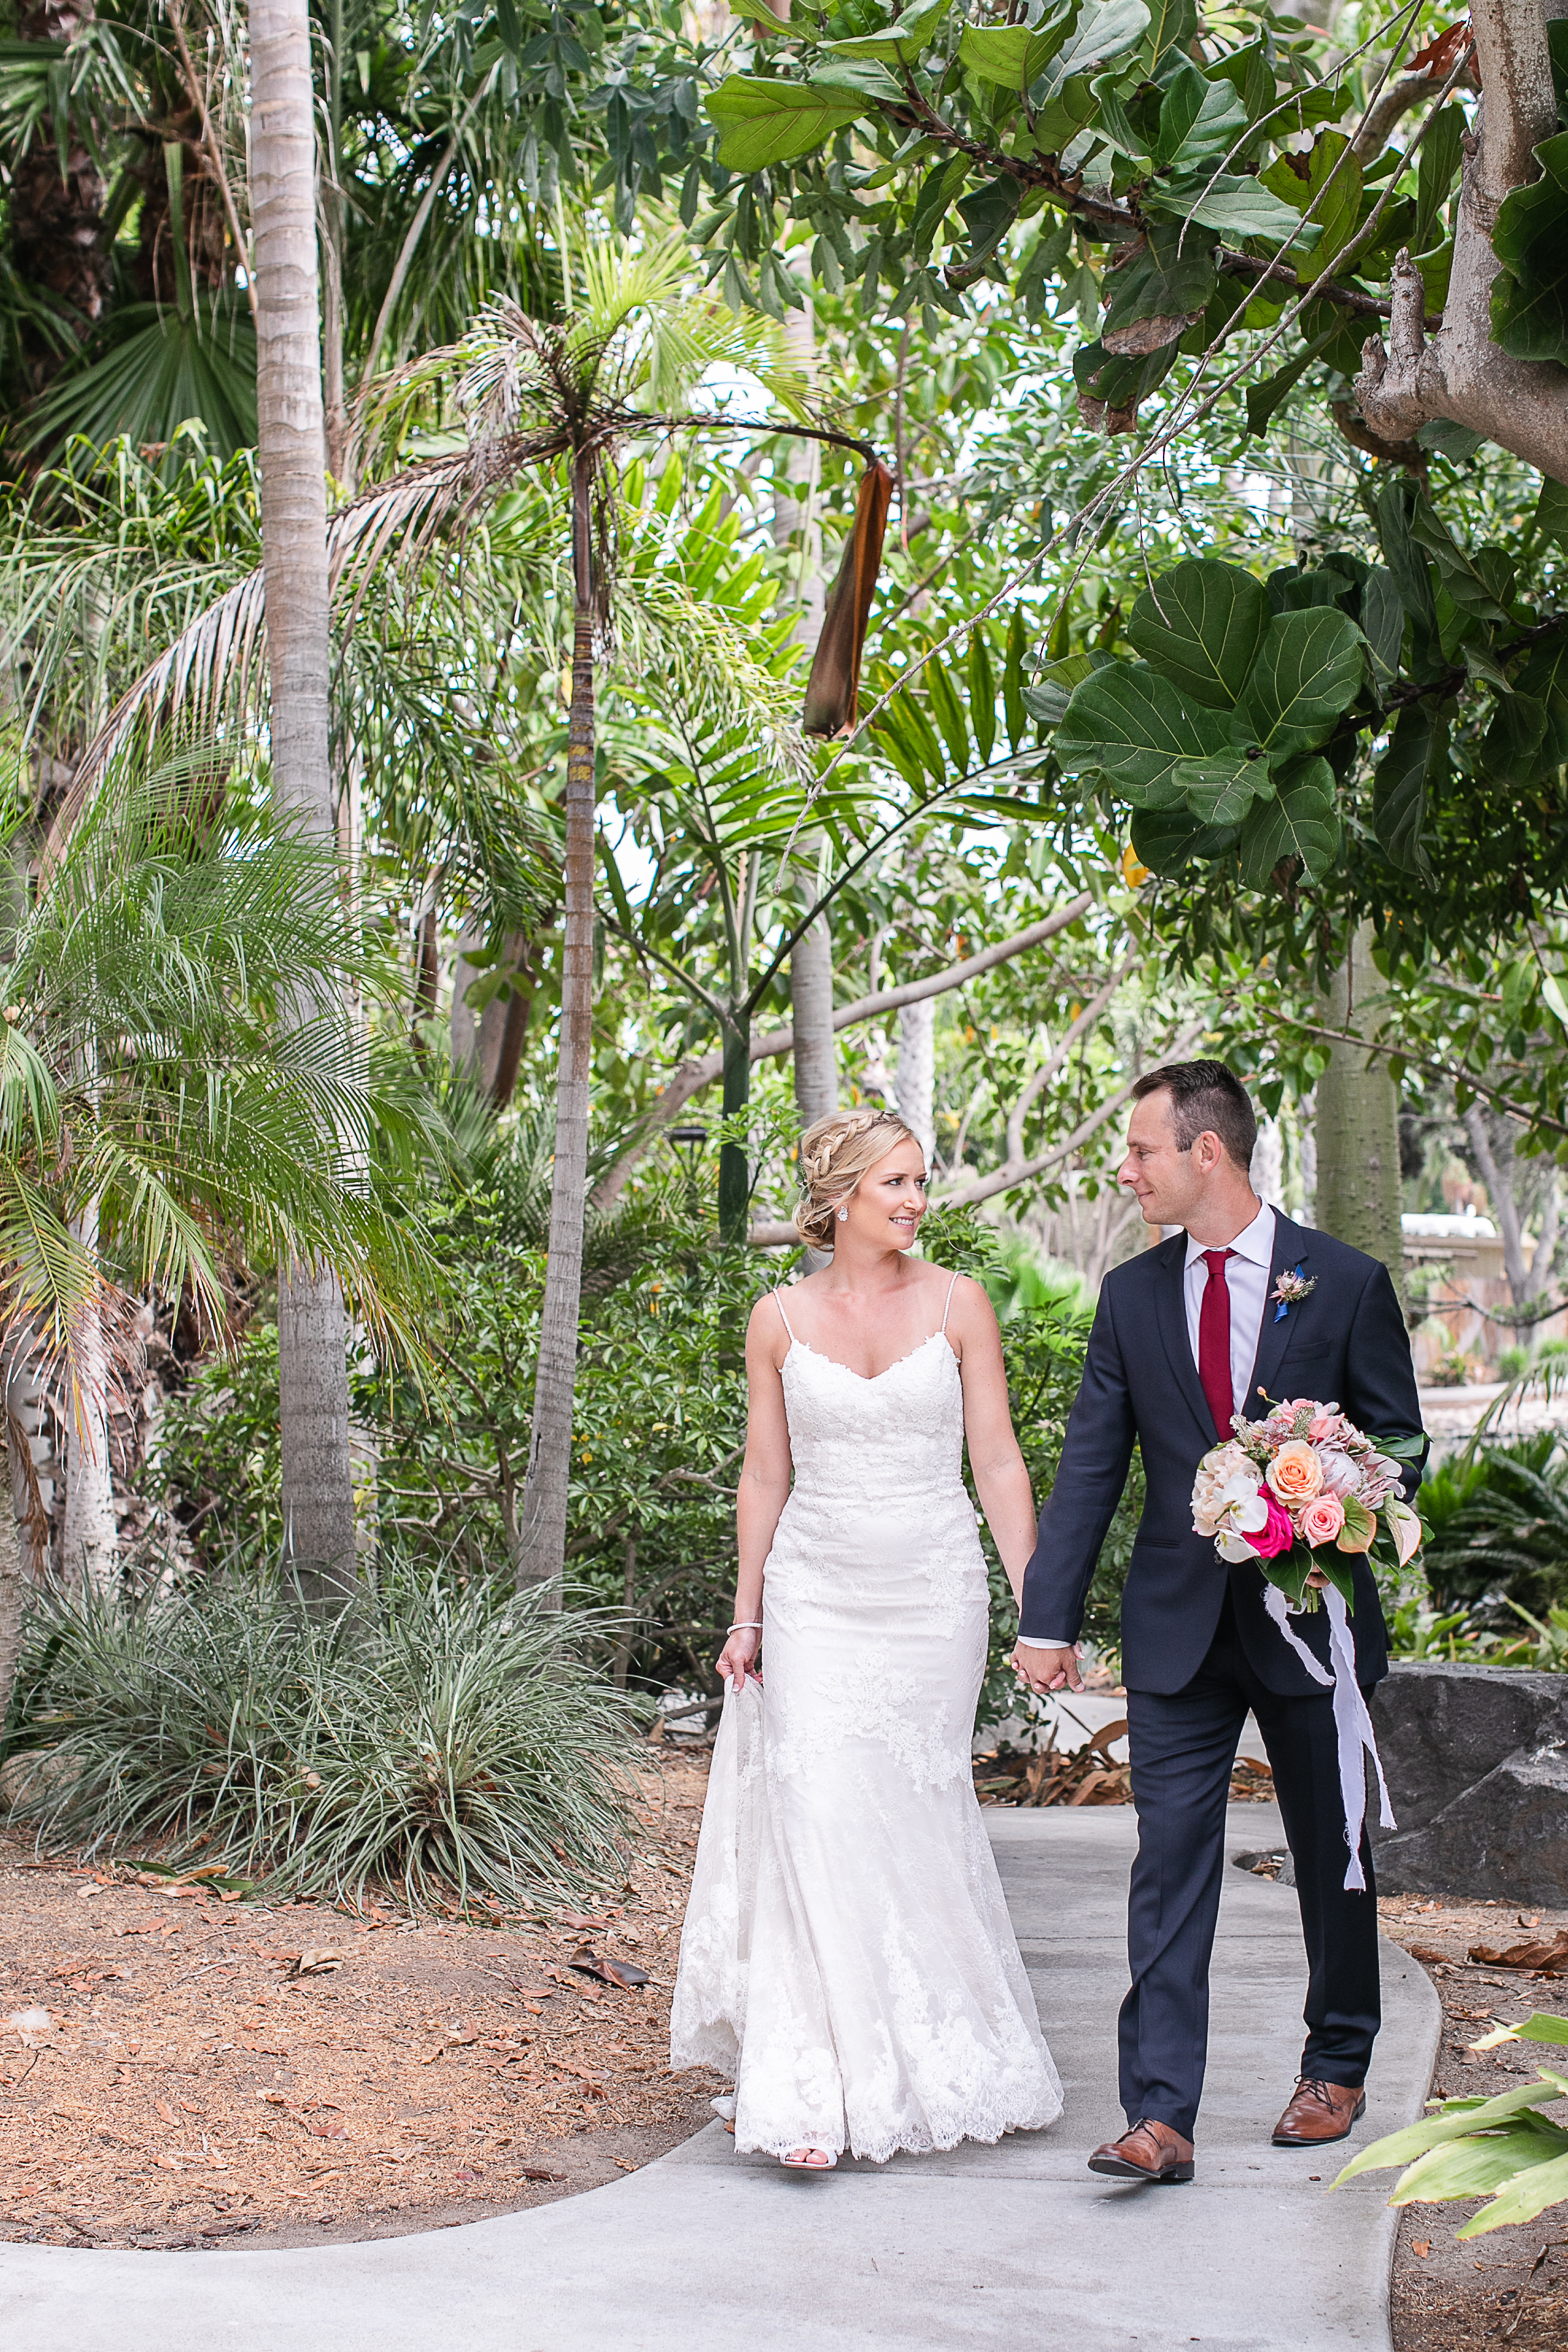 Heather and Chad's Wedding at Coronado community Center and Paradise Point-18.jpg